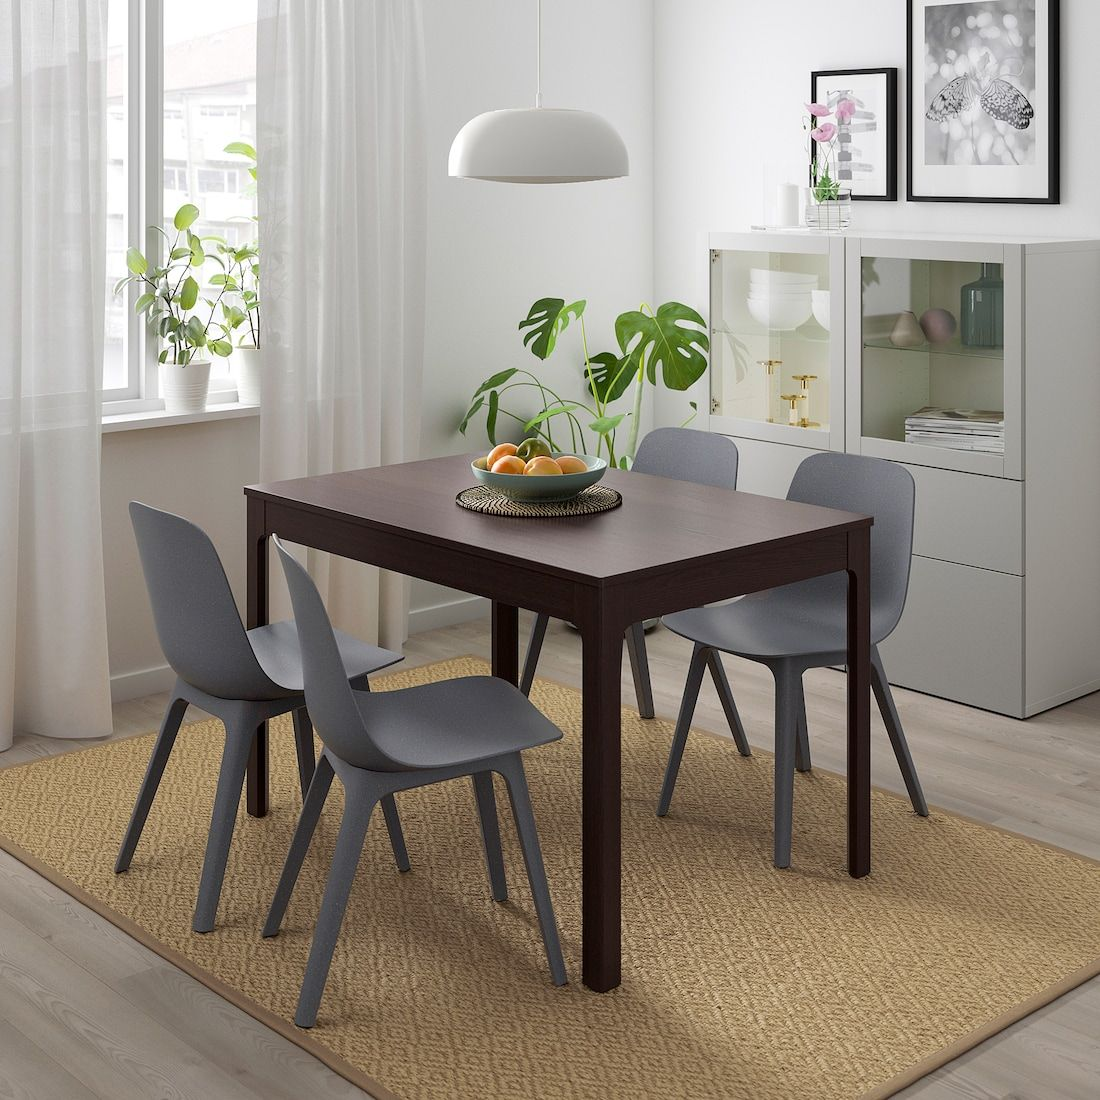 EKEDALEN / ODGER Table and 4 chairs dark brown, blue 47